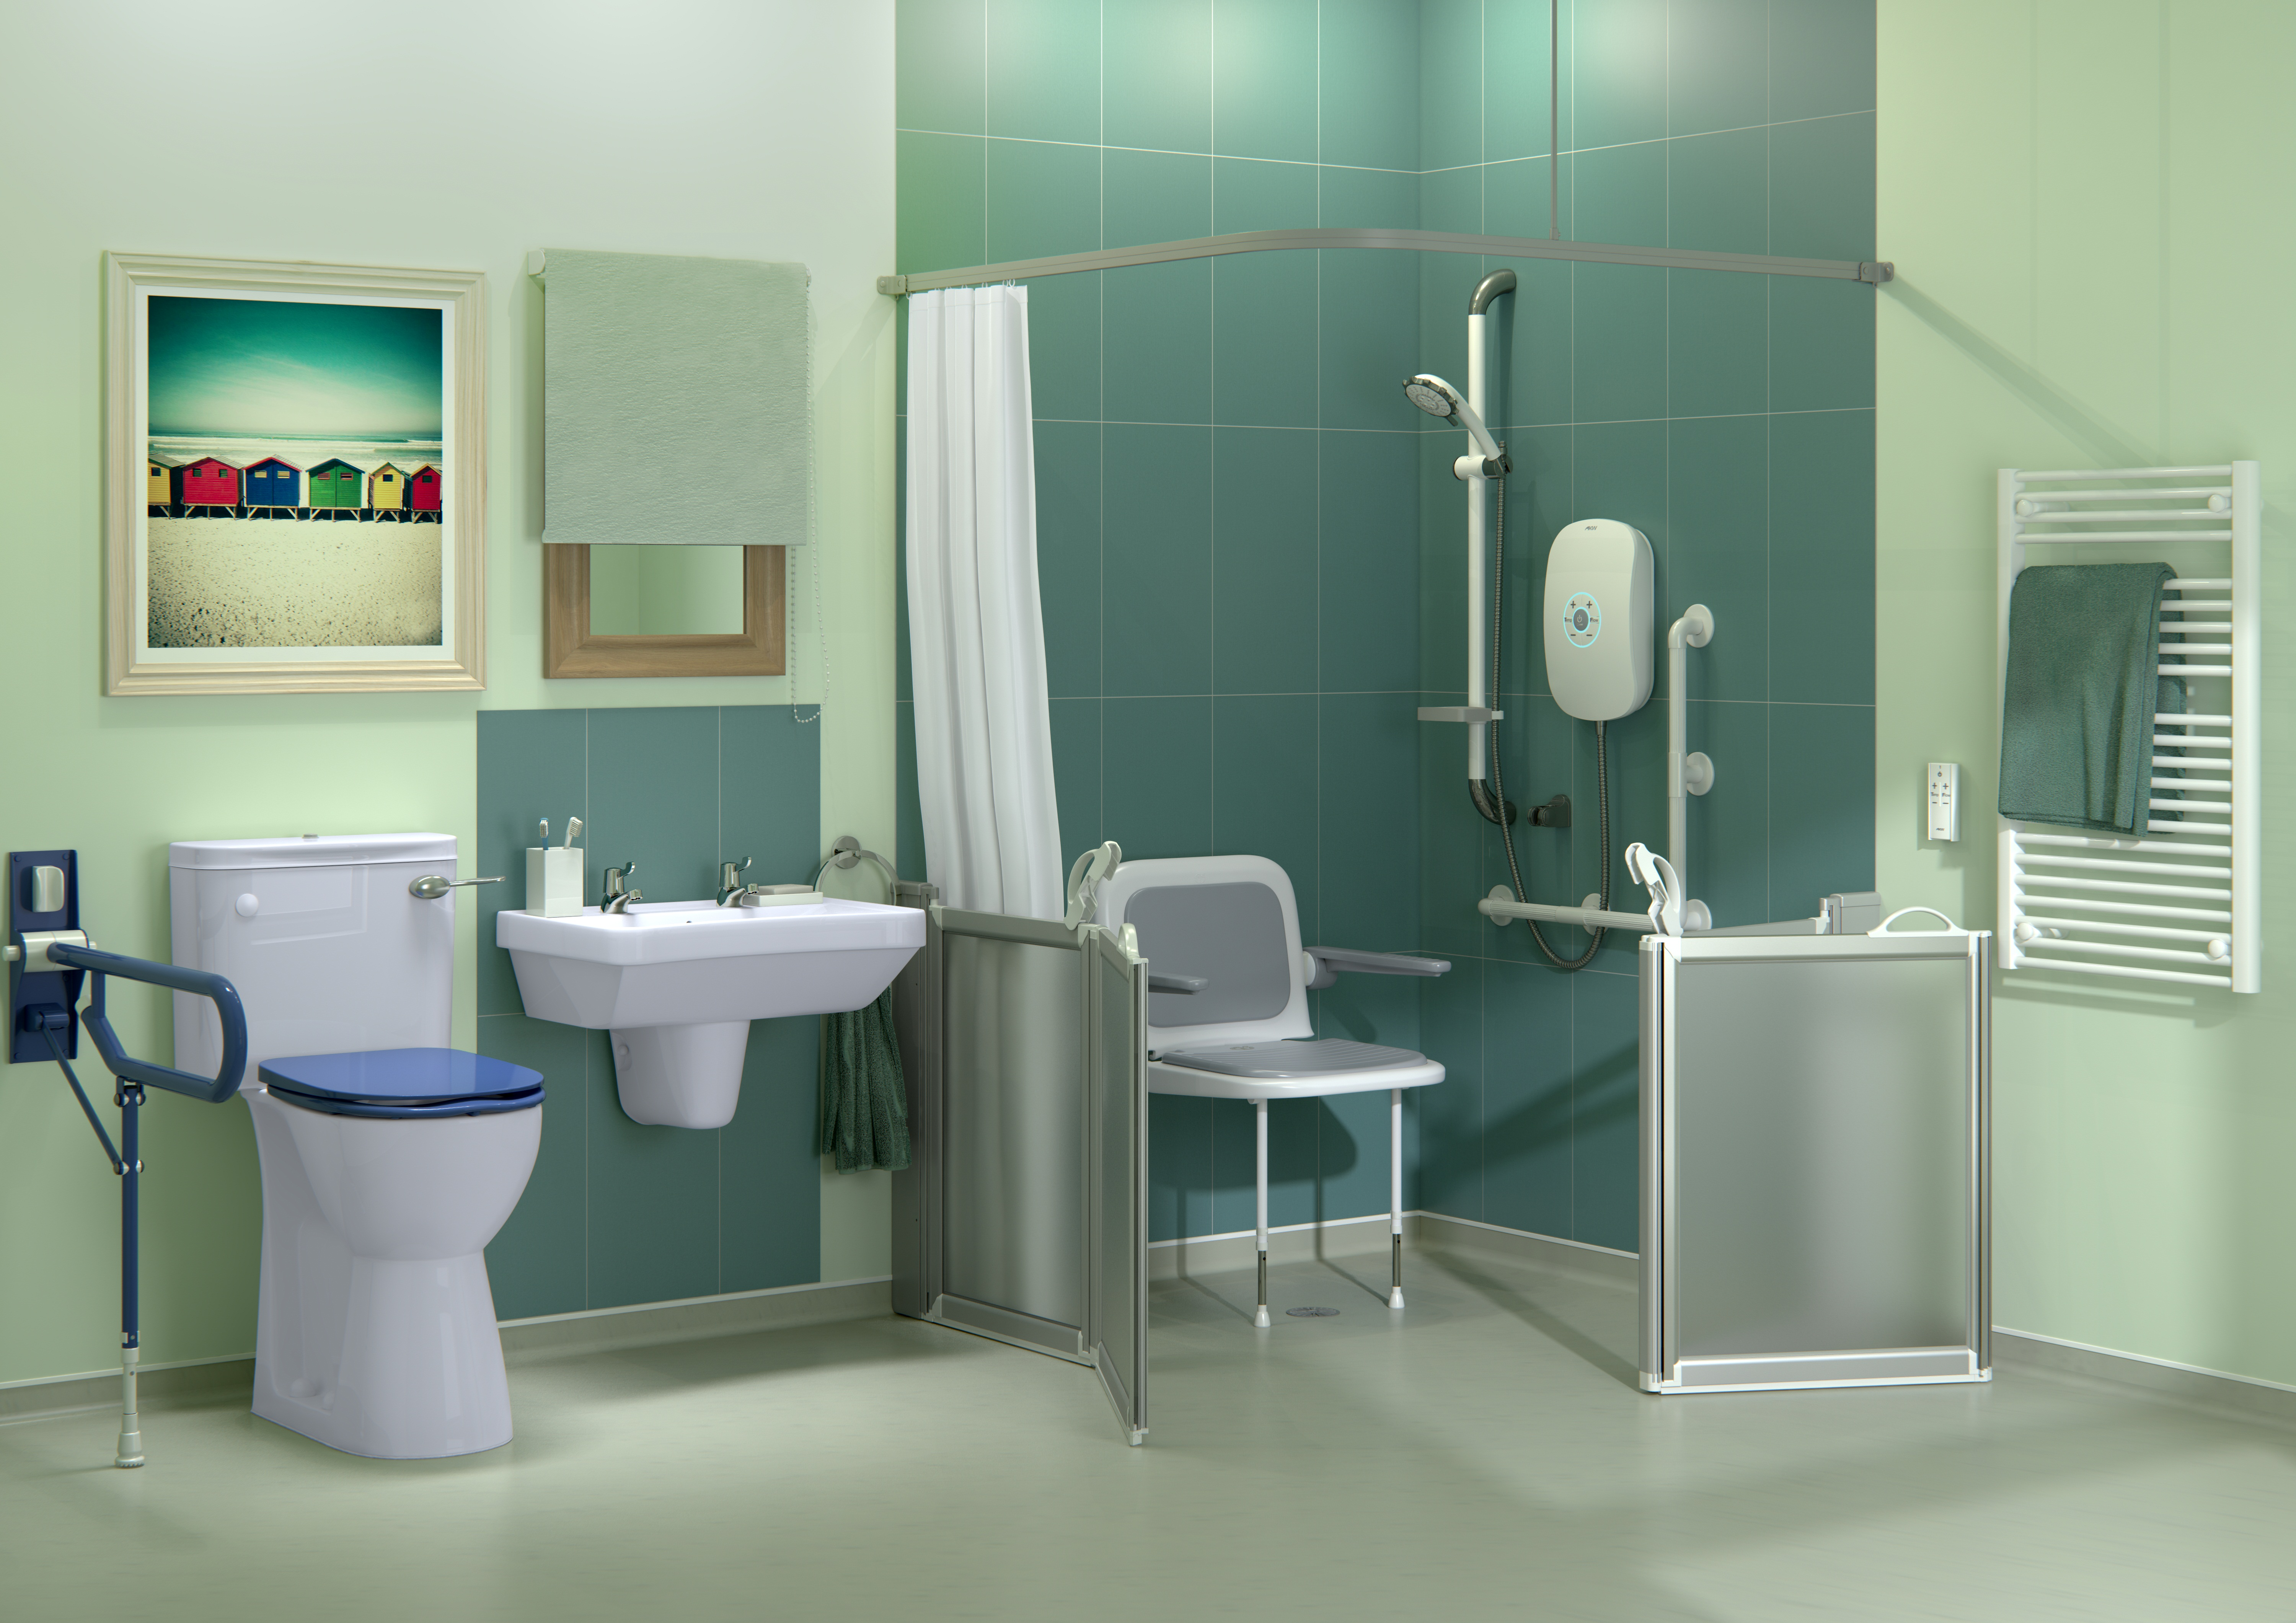 AKW offers an advanced range of showering solutions